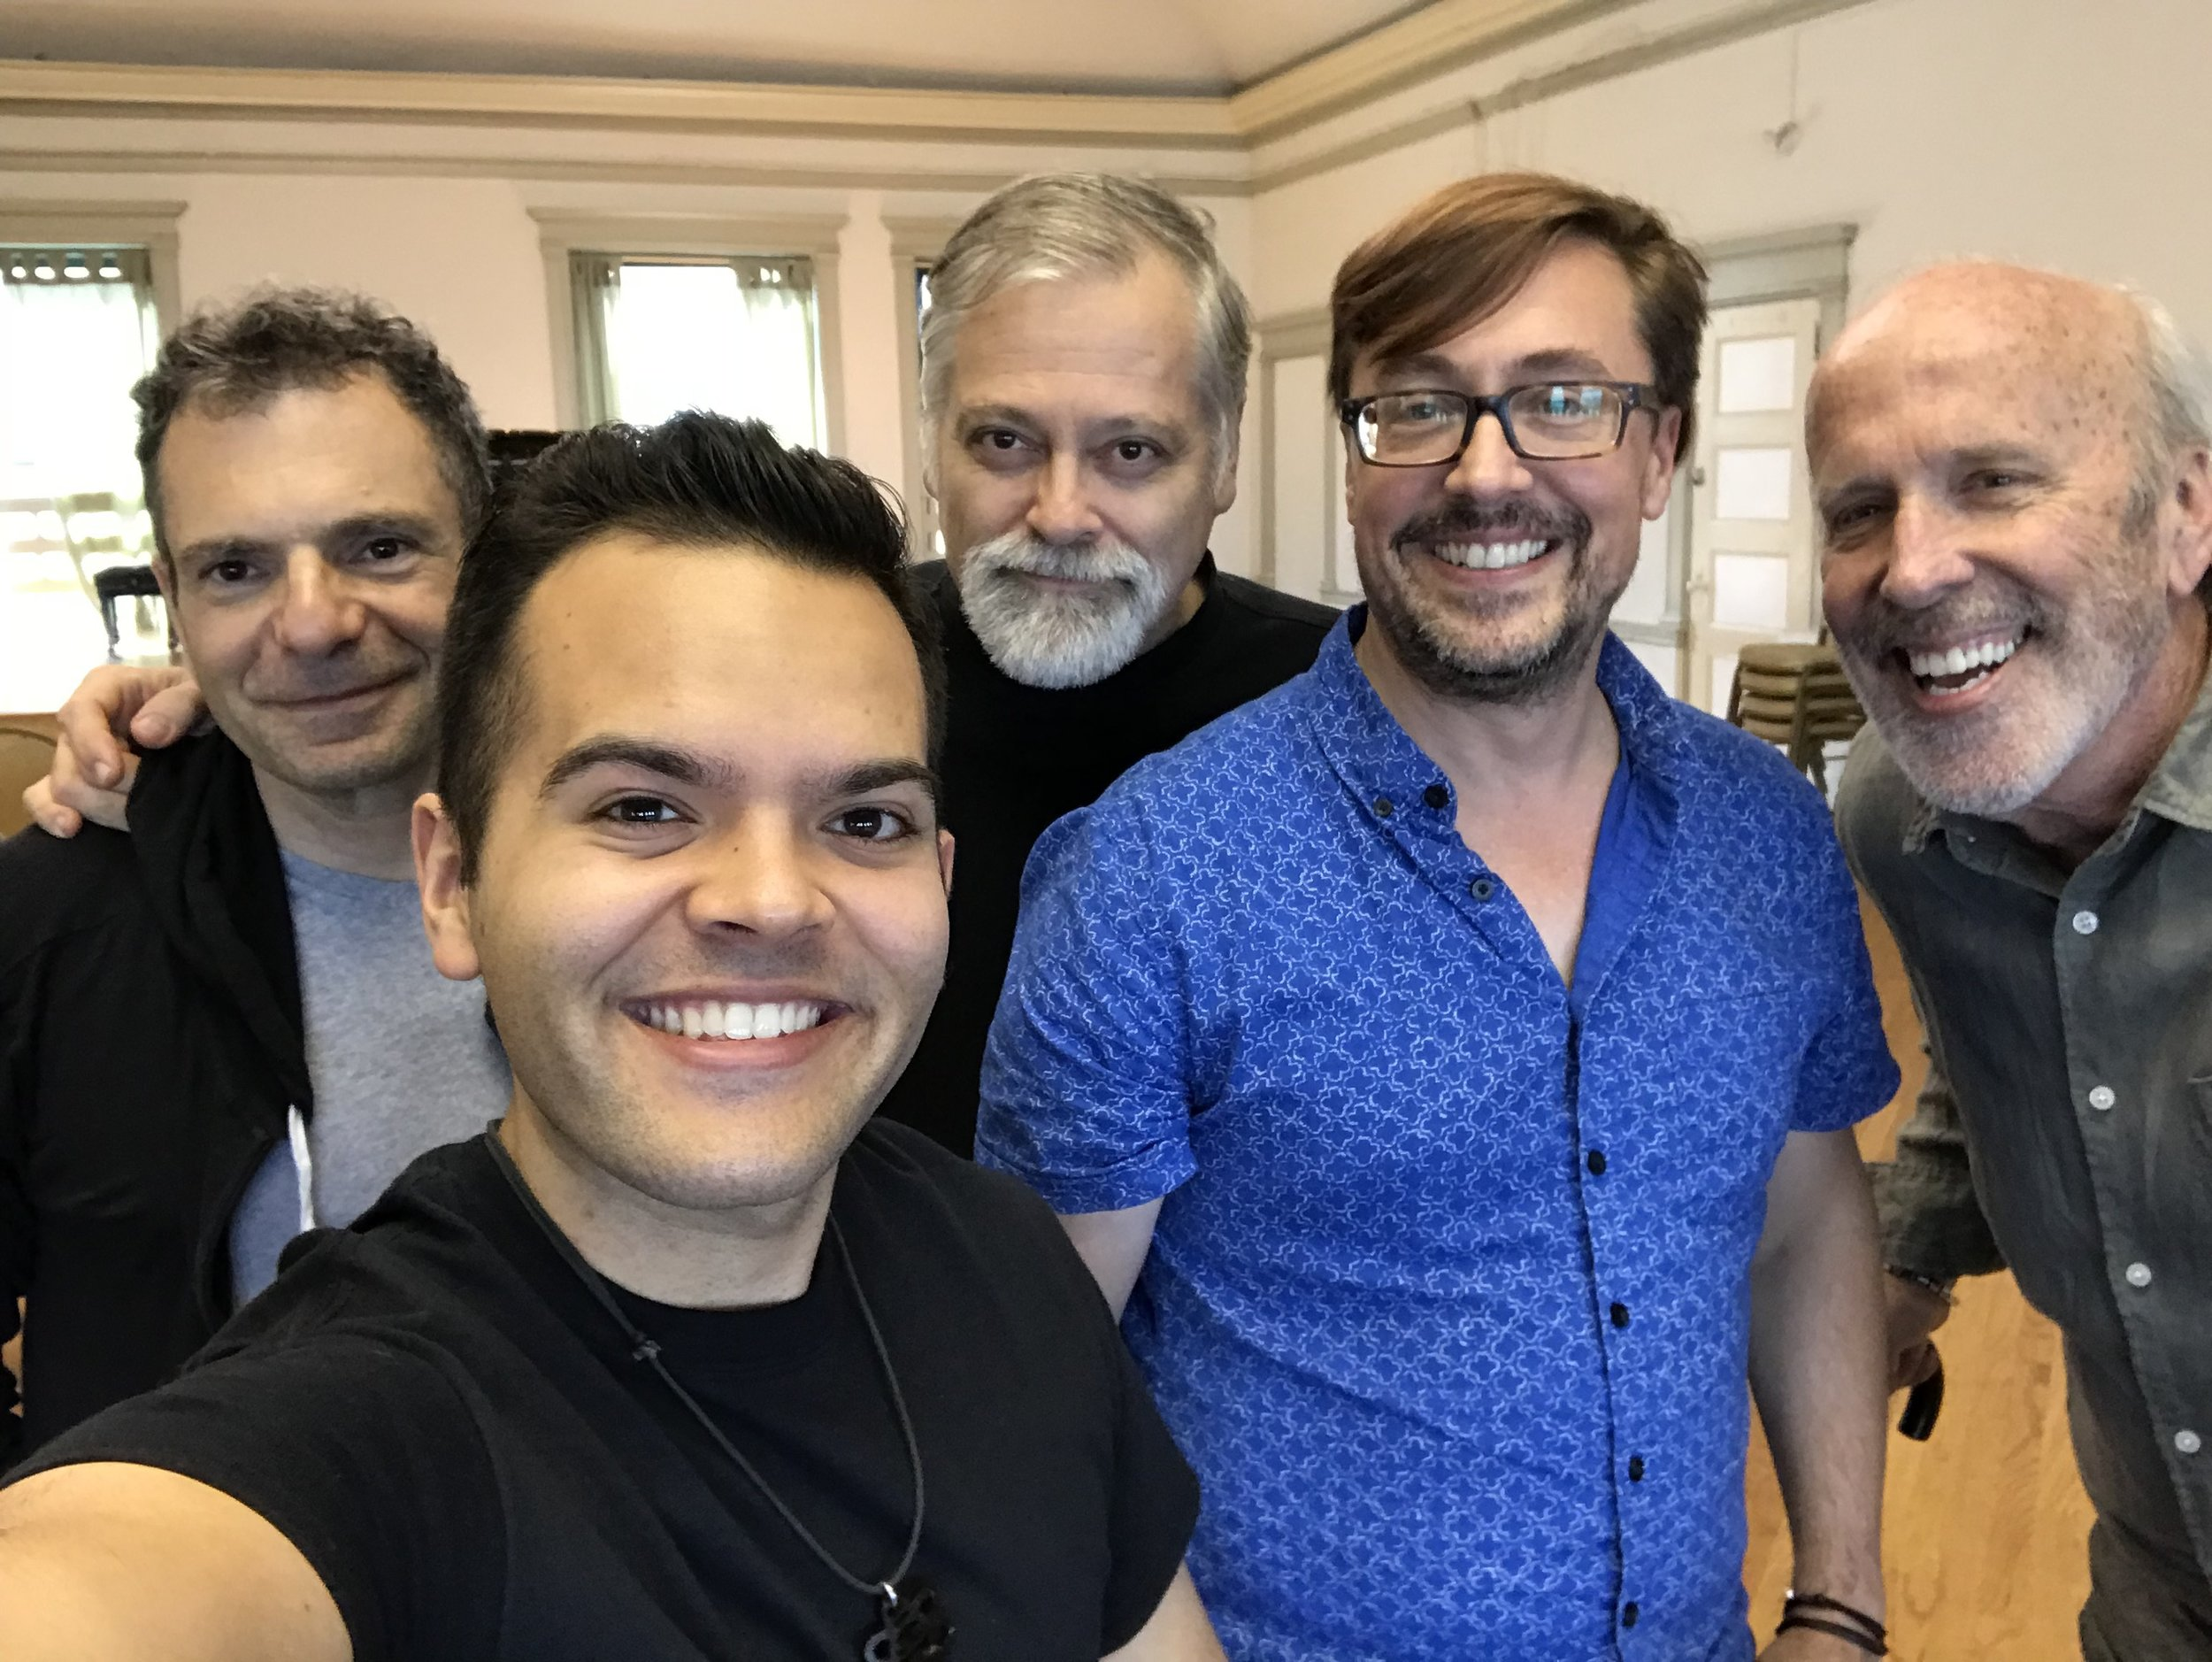 (l. to r.) Conductor Roger Zahab, Omar Mulero, Daron Hagen, Robert Frankenberry, and Robert Orth in rehearsal at the Fine Arts Bulding in Chicago, September 2018.